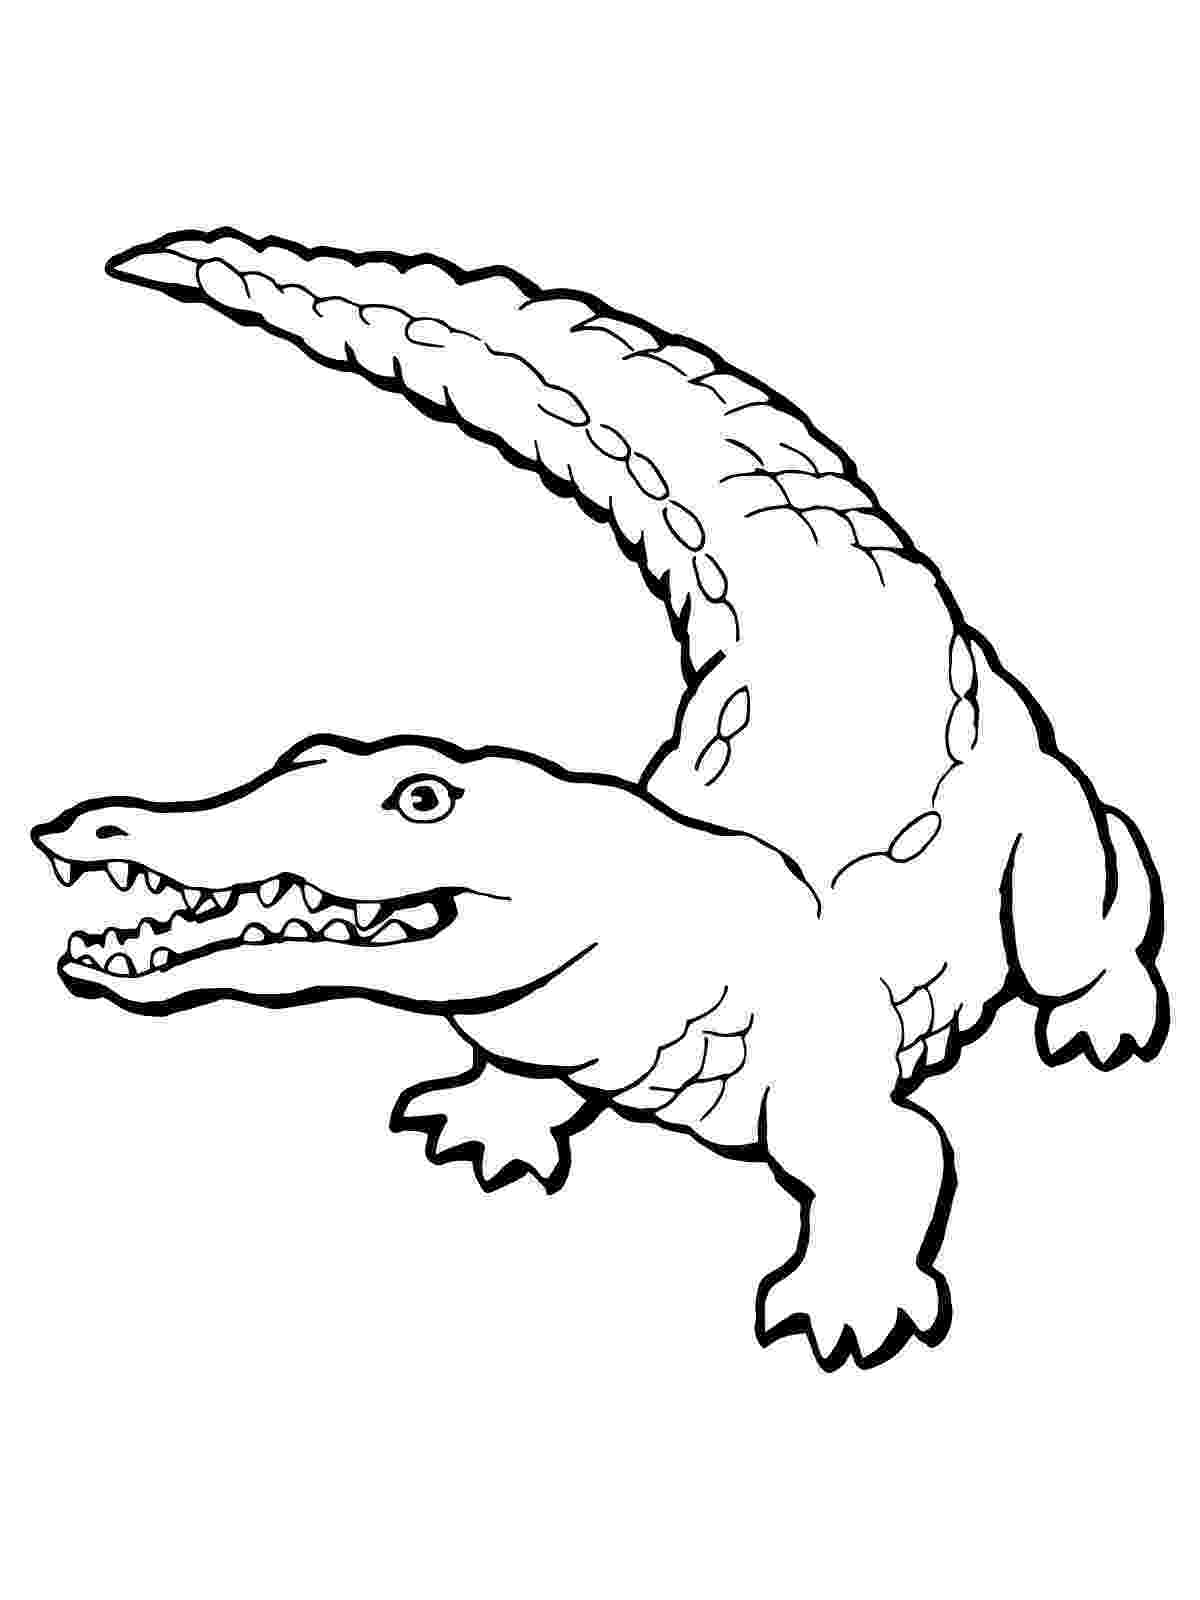 crocodile colouring pictures free printable crocodile coloring pages for kids pictures crocodile colouring